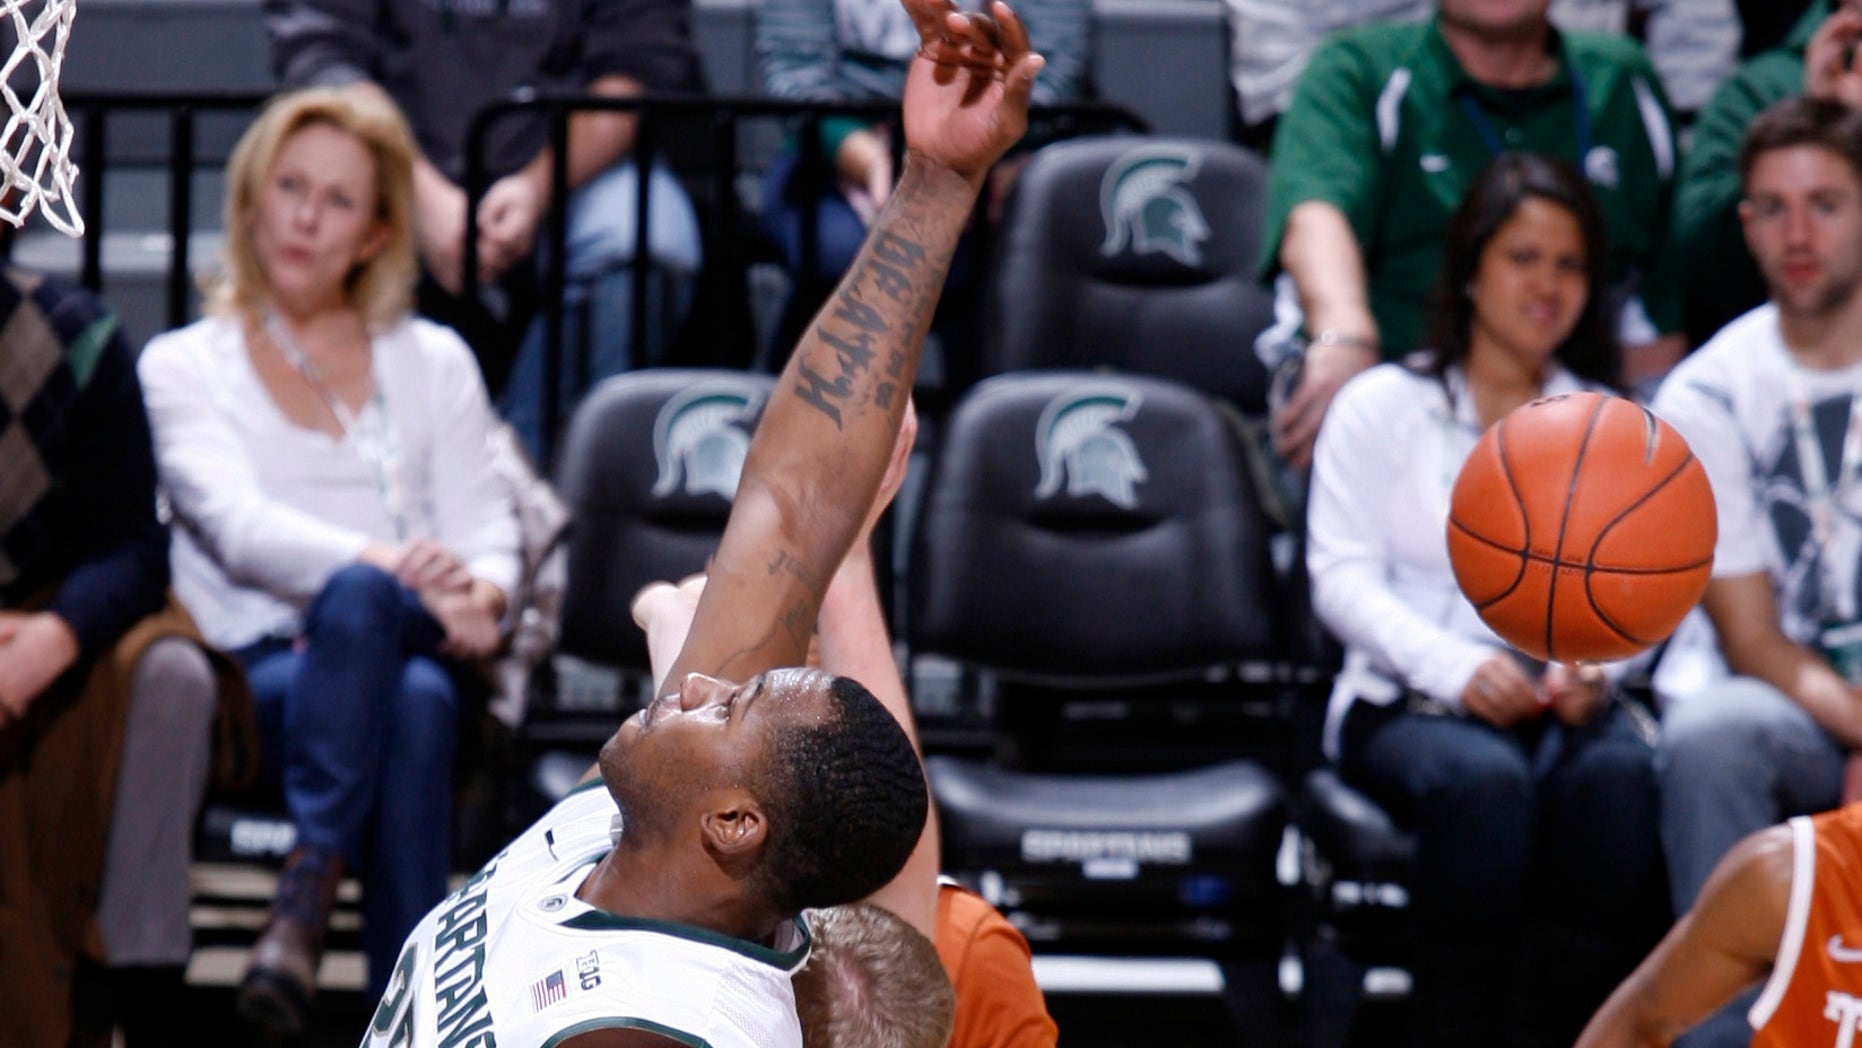 Michigan State's Derrick Nix, left, and Texas' Connor Lammert compete for a rebound during the first half of an NCAA college basketball game, Saturday, Dec. 22, 2012, in East Lansing, Mich. (AP Photo/Al Goldis)